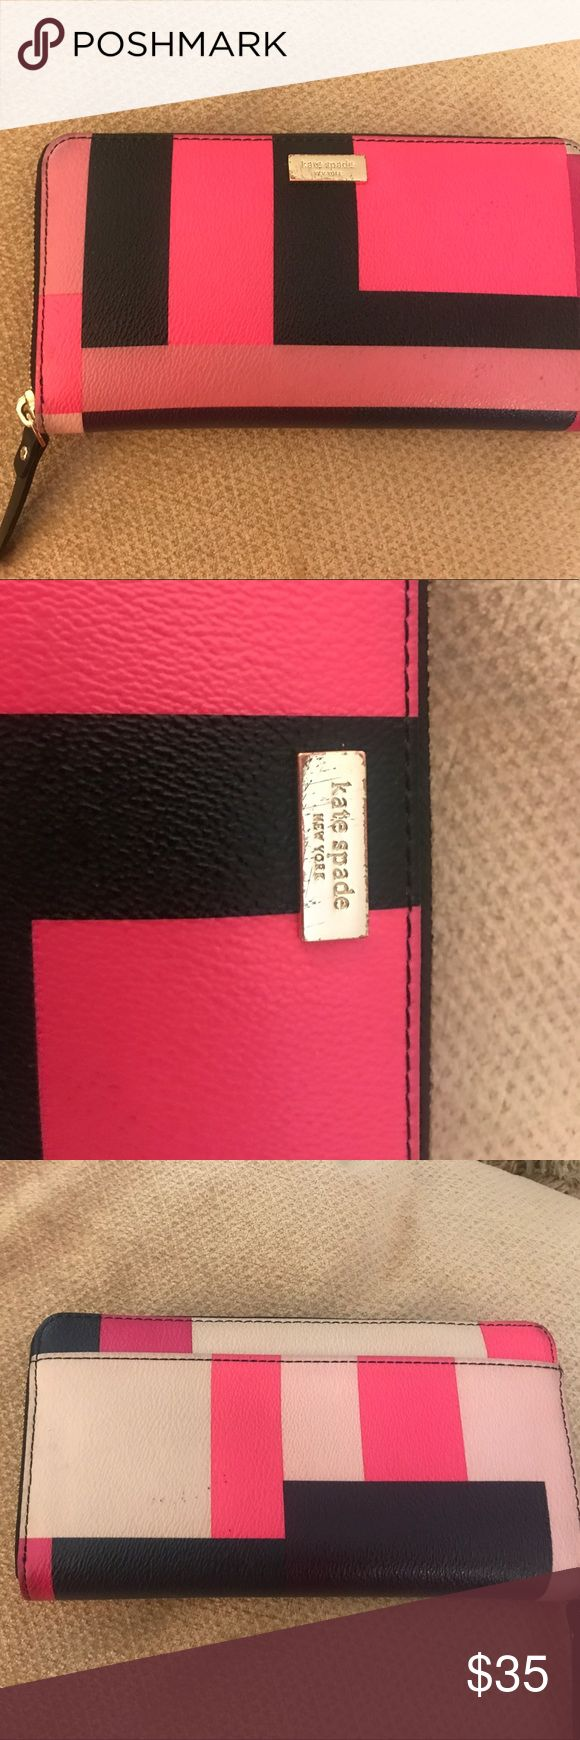 Kate Spade Ladies Wallet This fun and adorable Kate Spade wallet is pre / owned in good condition! Zips up to keep Credit Cards and cash safe! Fun wallet !! kate spade Bags Wallets